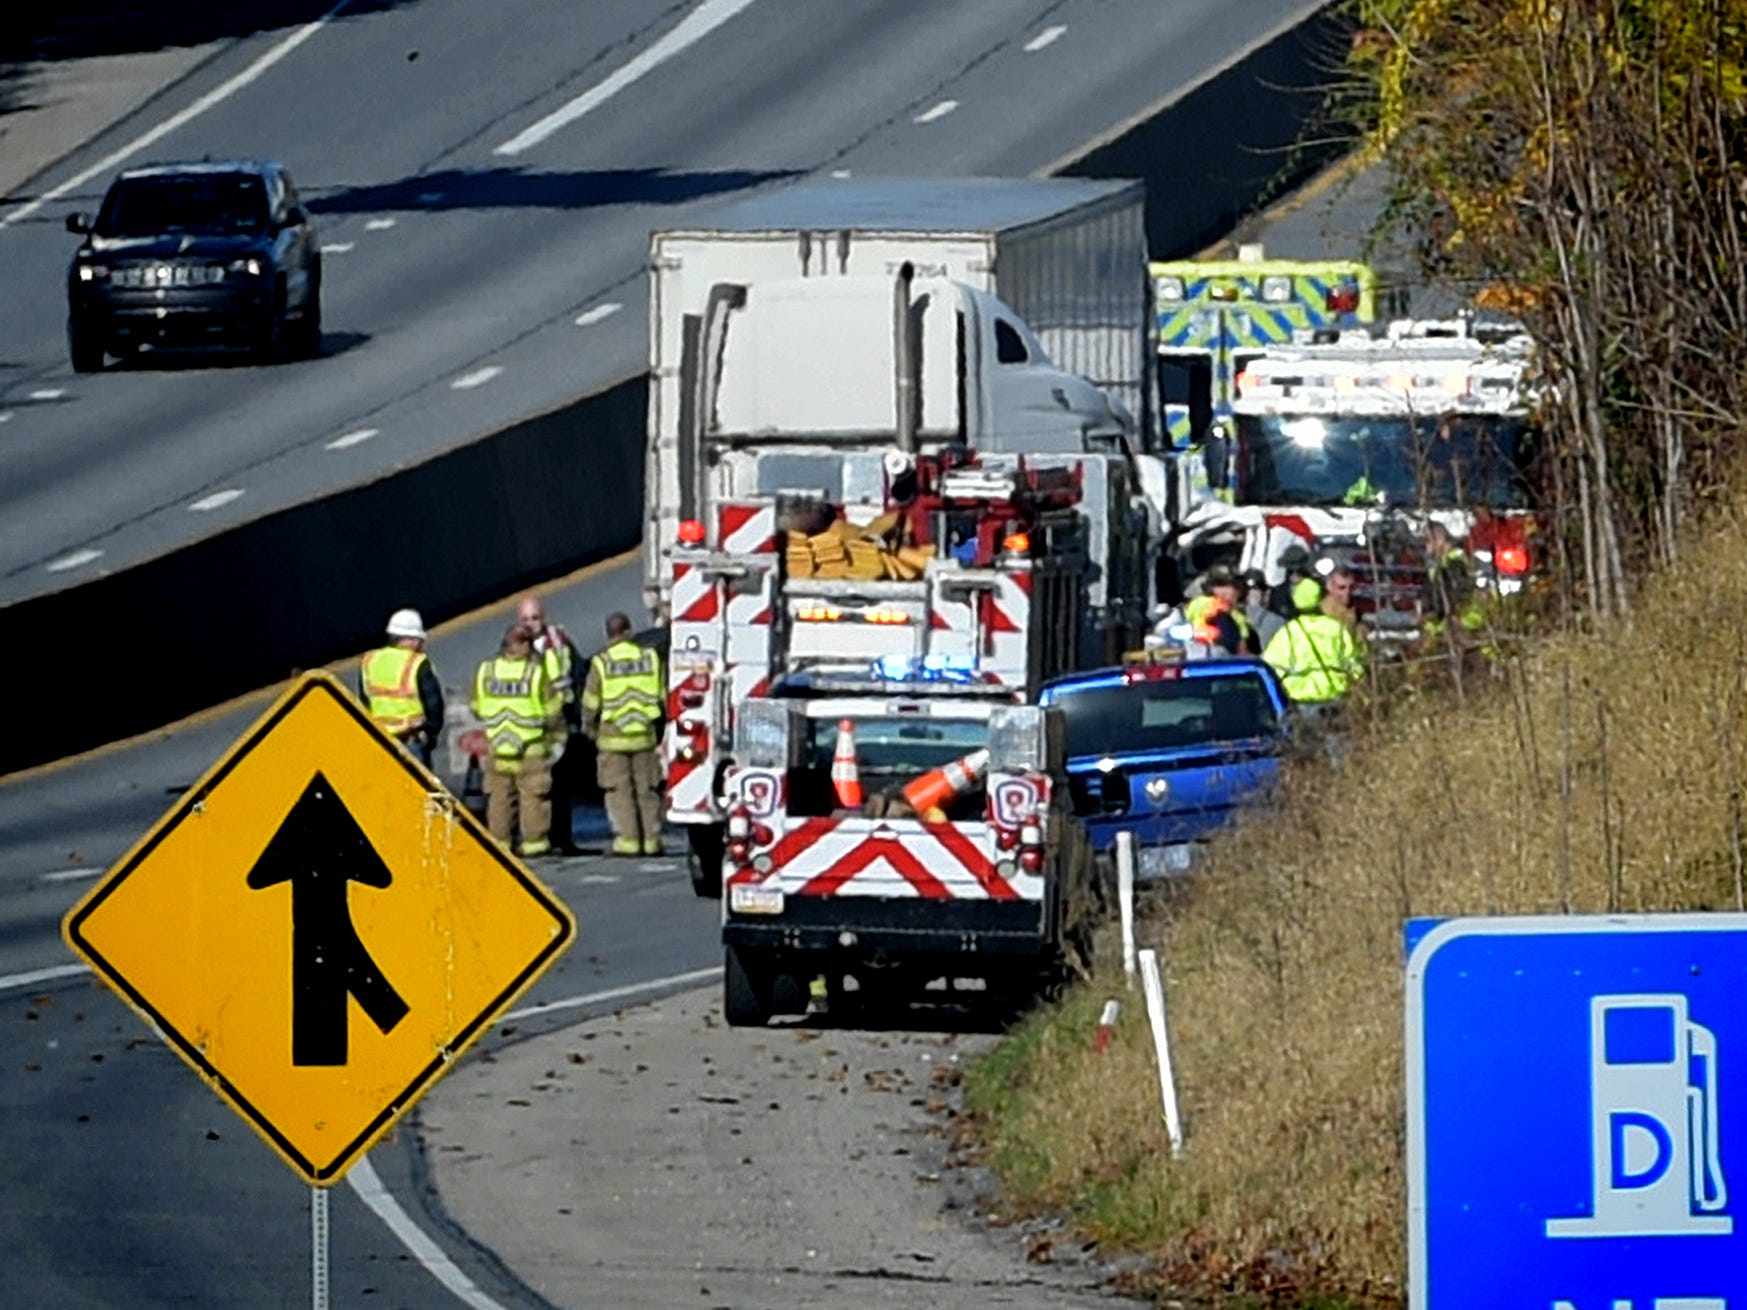 Northbound I-83 is closed at Exit 33, Yocumtown, after a fatal accident occurred on northbound I-83, south of Exit 34, Valley Green, Thursday, Nov. 8, 2018. The interstate was closed for several hours after the crash which occurred just before 9 a.m. Bill Kalina photo